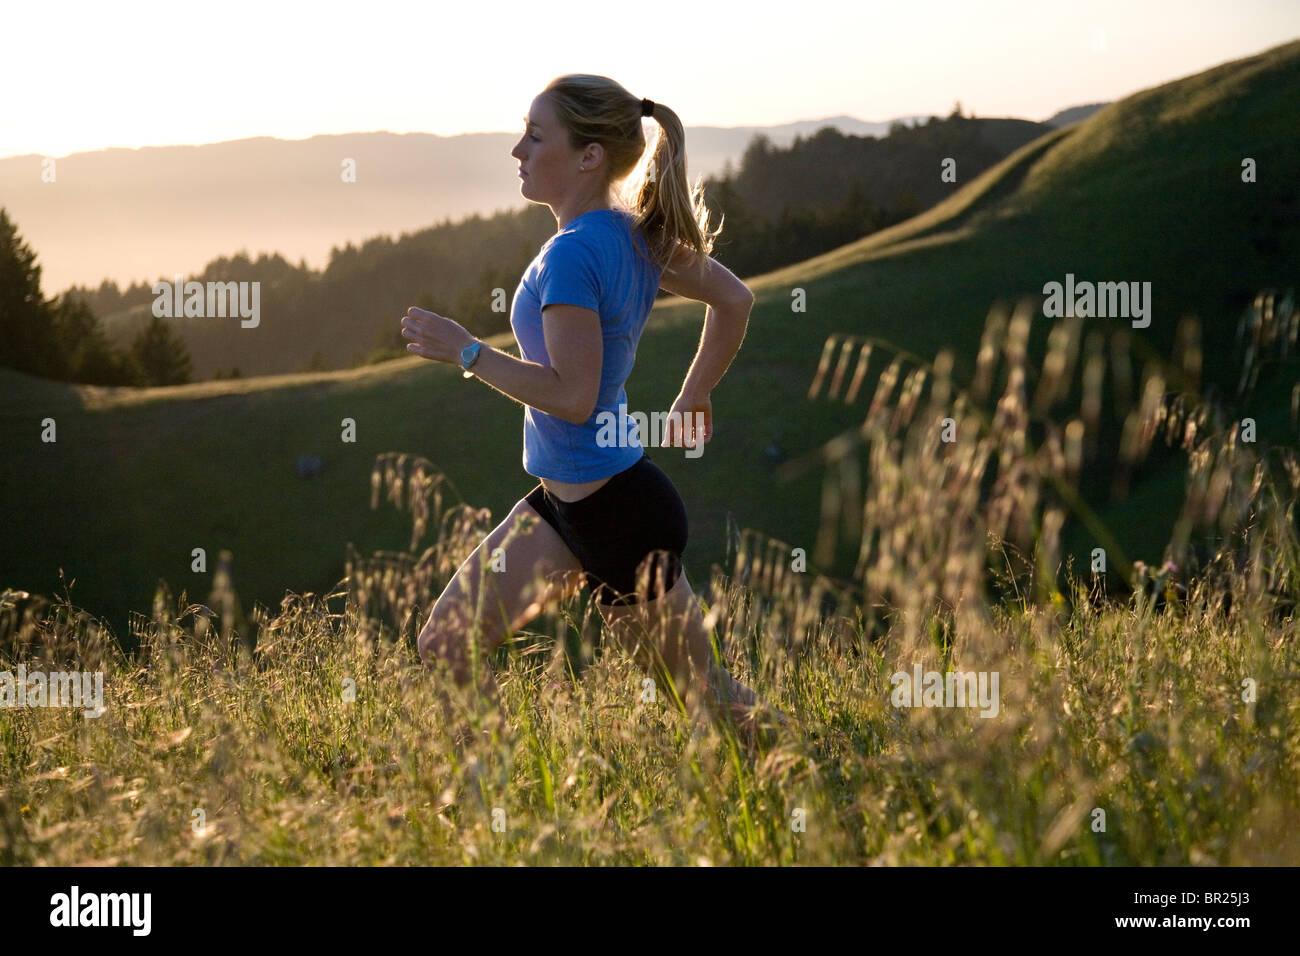 As sunset nears, a runner follows a tiny, single-track trail along the western slopes of Northern California's - Stock Image